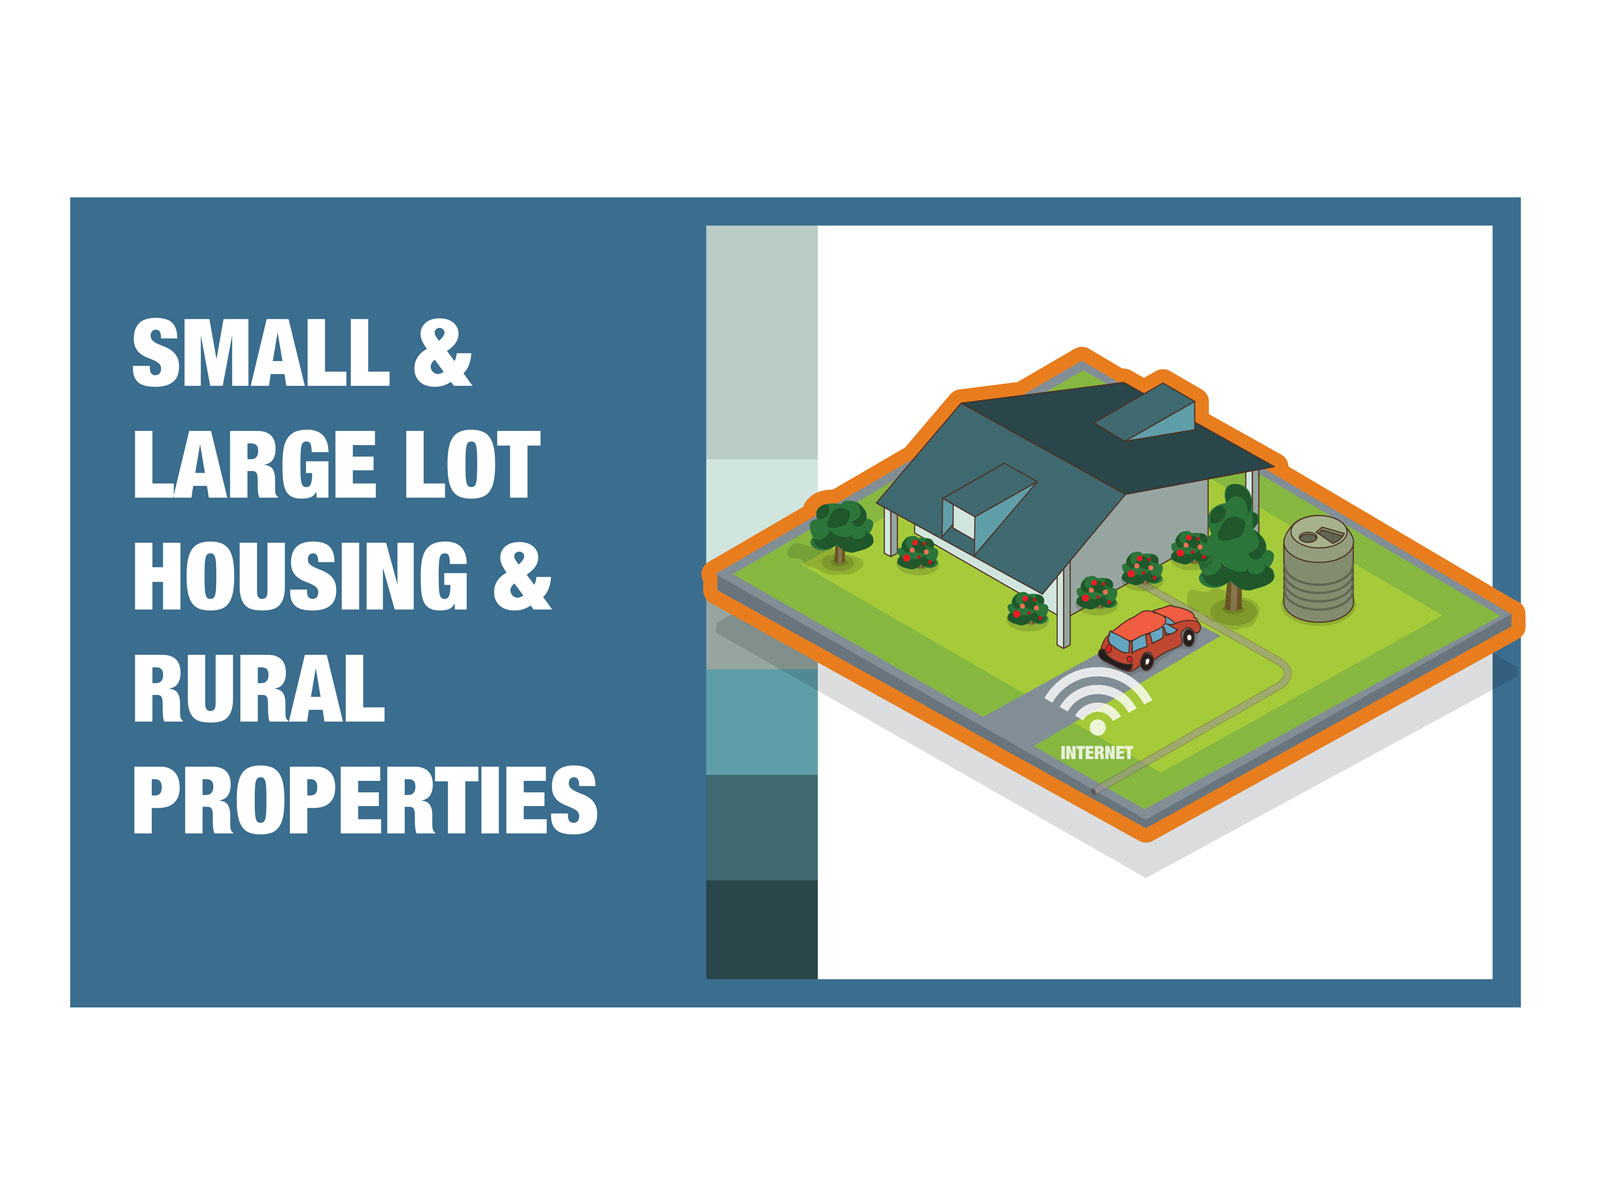 House isometric detailed colourful vector icon illustration